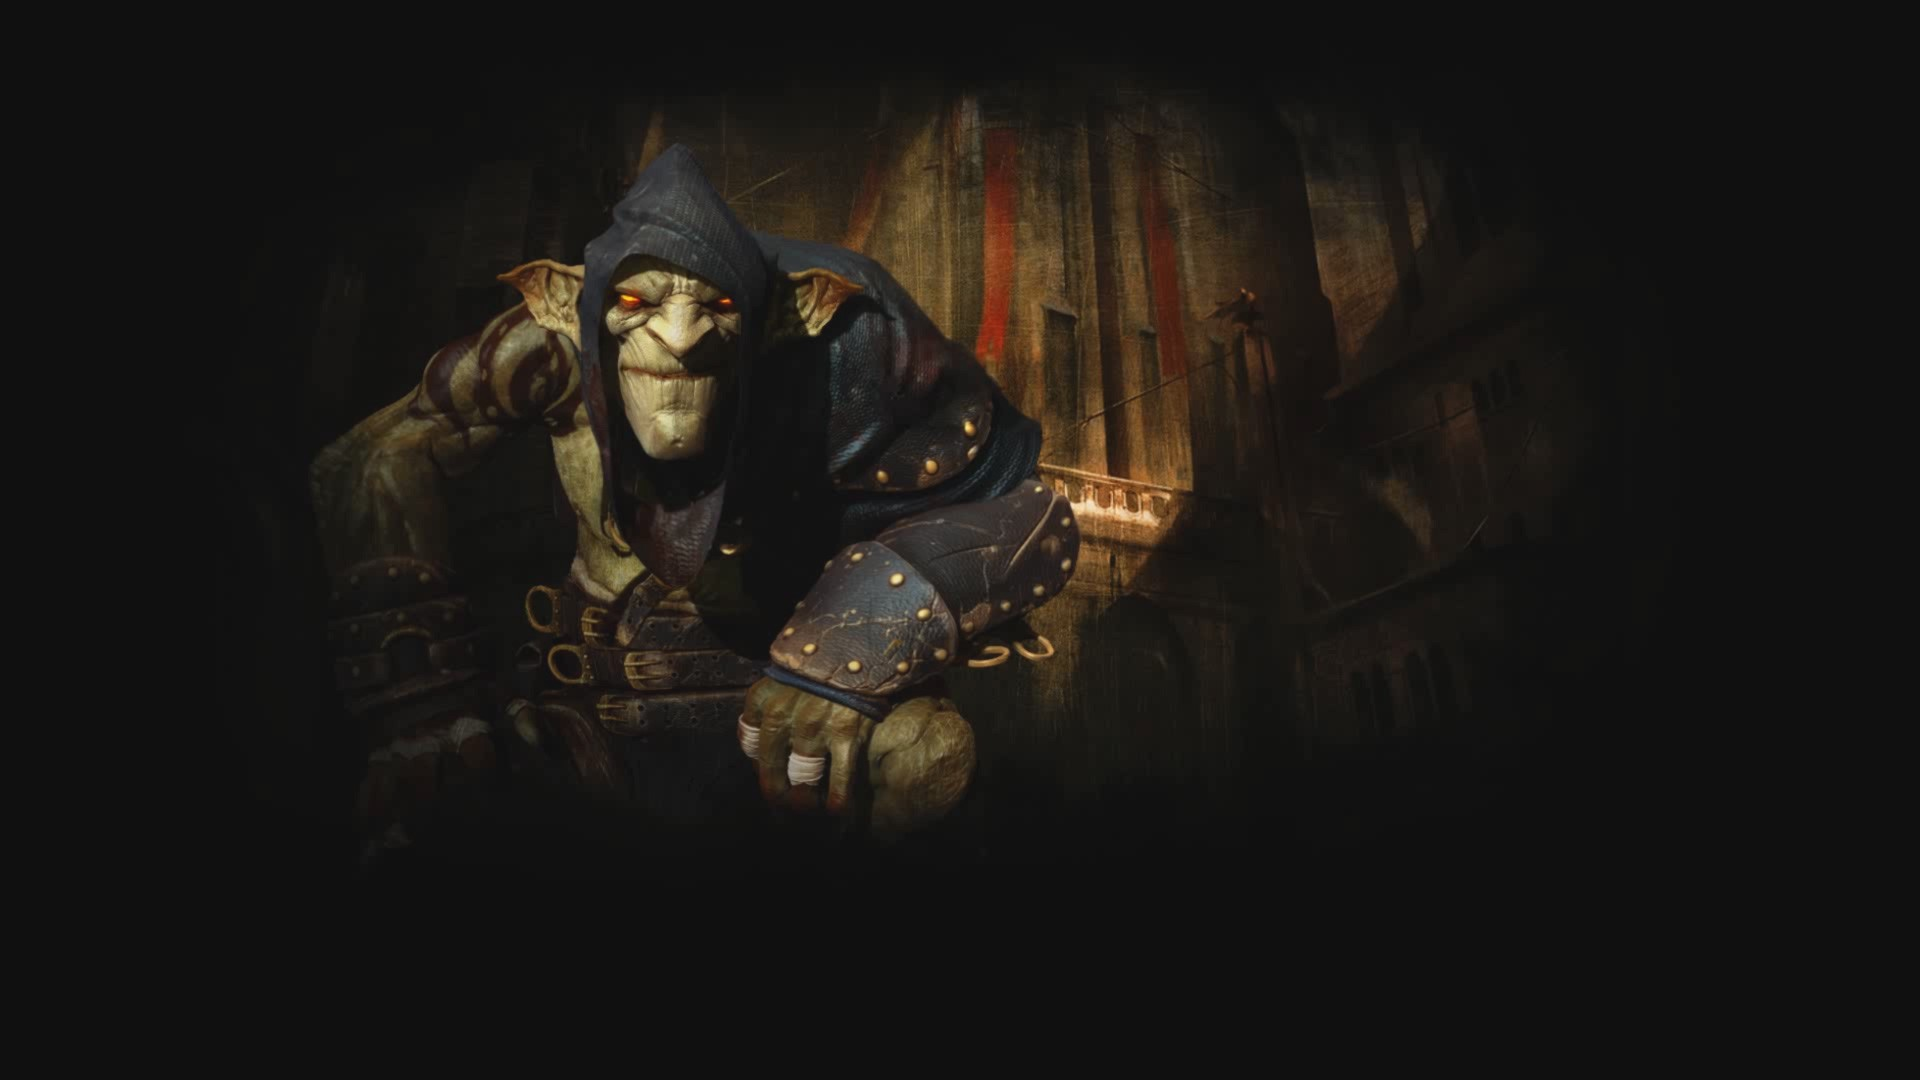 Styx Master of Shadows Wallpapers 1 2 1920x1080